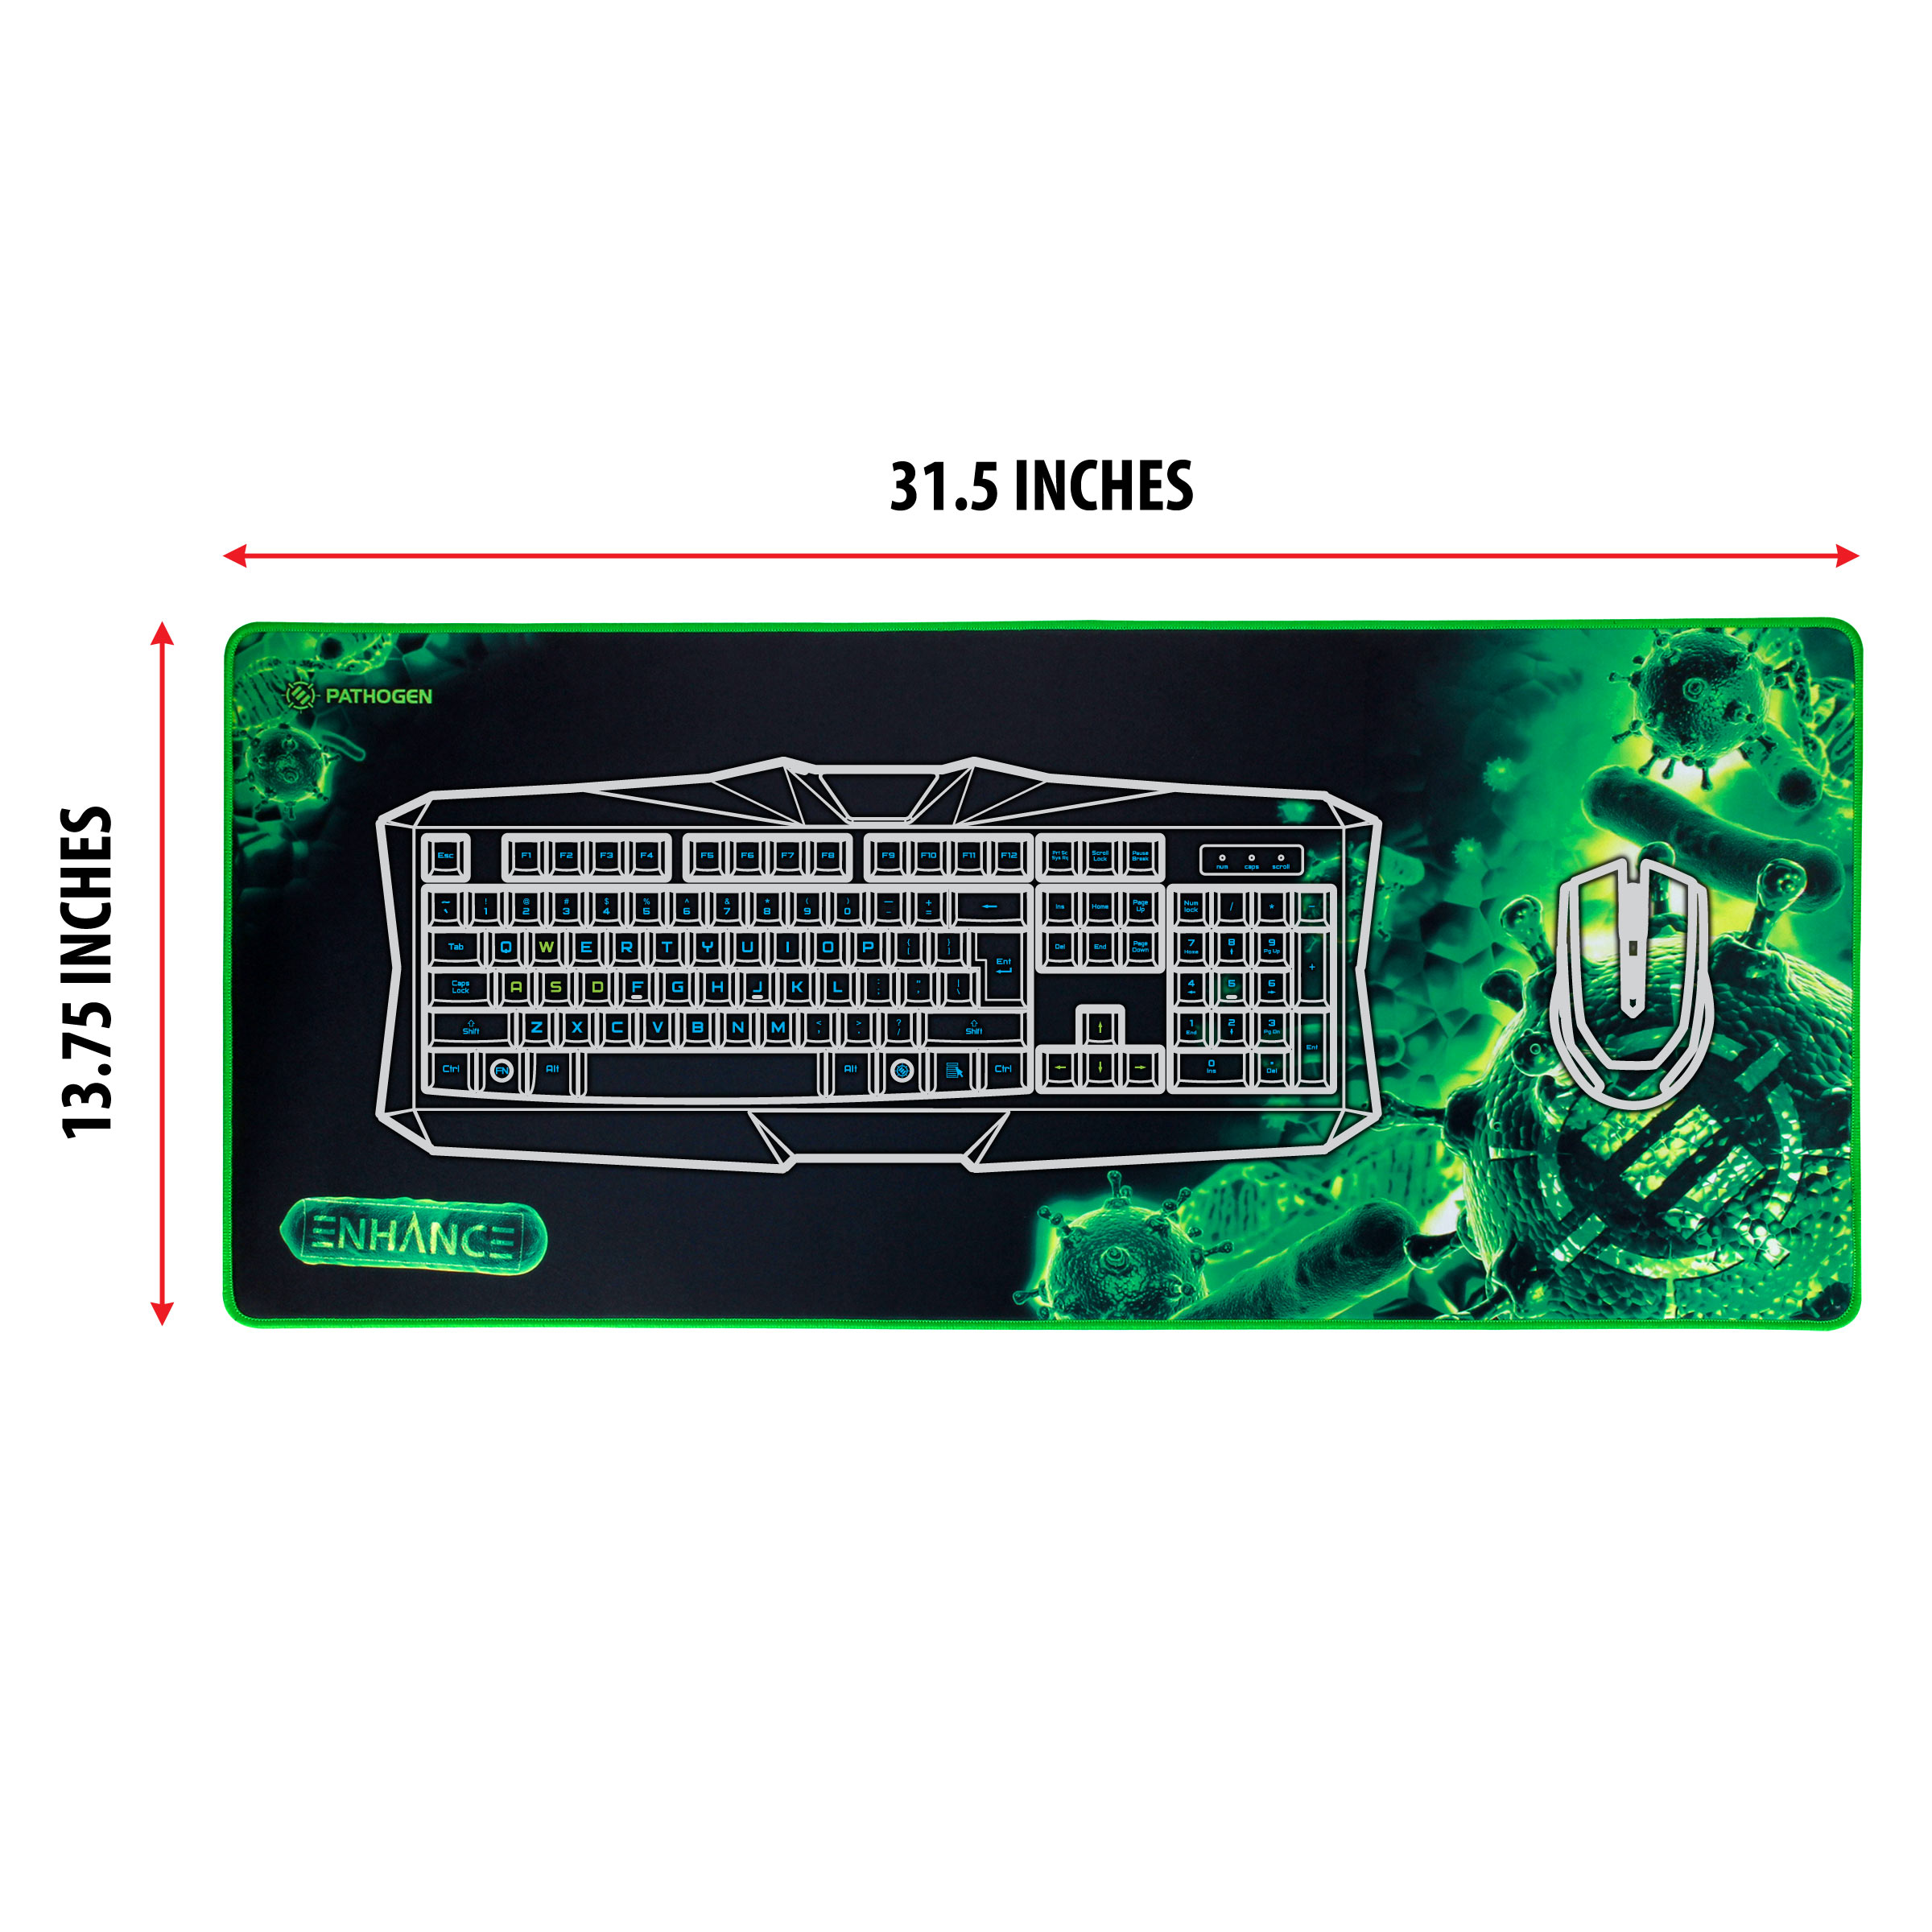 ENHANCE GX-MP2 XL Extended Gaming Mouse Pad Mat (31.5? x 13.75?) with Low-Friction Tracking Surface 5